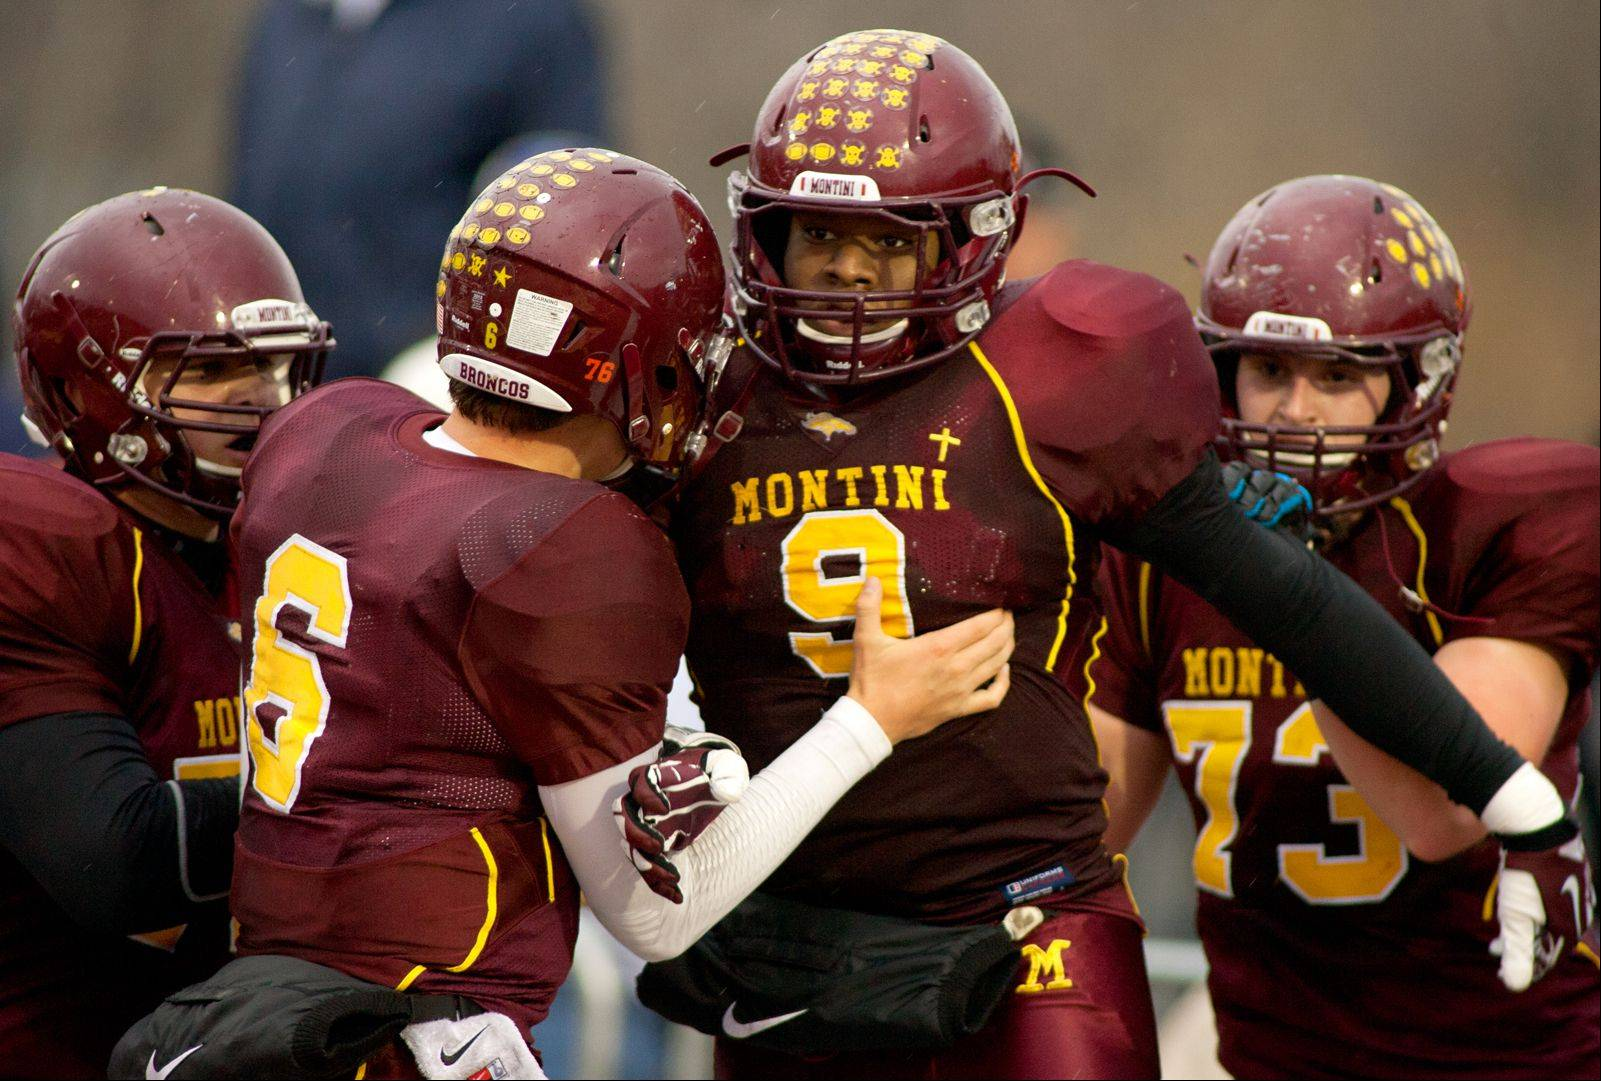 Montini Catholic's Niles Sykes (9) is mobbed by teammates after his 2-point conversion gave the Broncos a 22-21 victory over Joliet Catholic on Saturday.